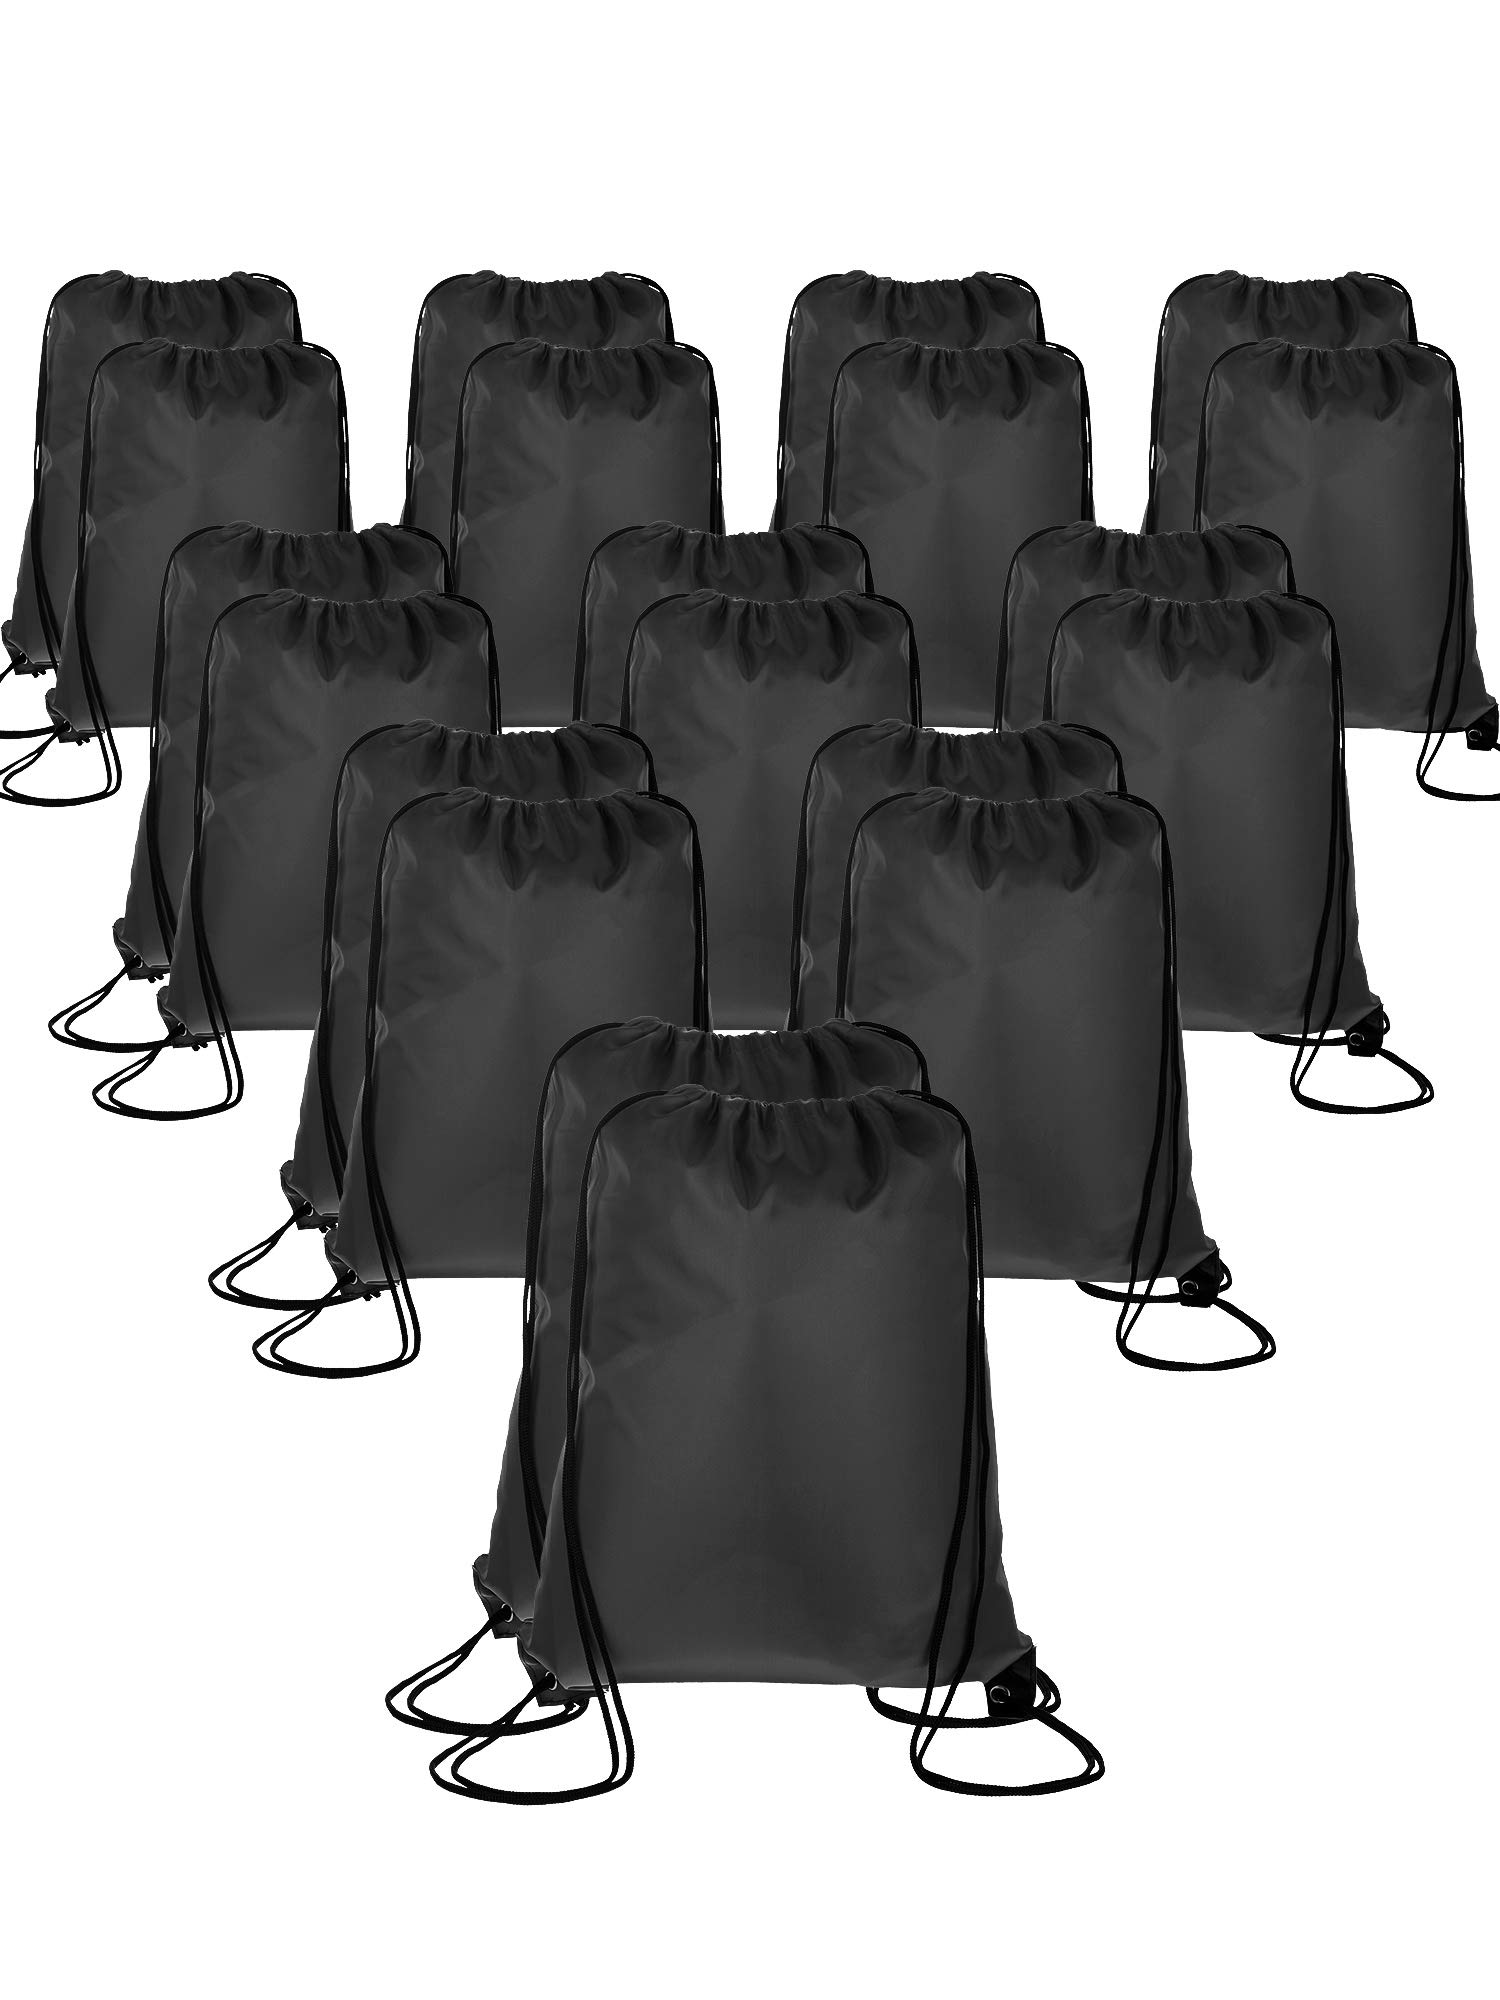 Shappy 20 Pieces Drawstring Bag Backpack Sport Bag Cinch Tote Travel Rucksack for Traveling and Storage (Black)